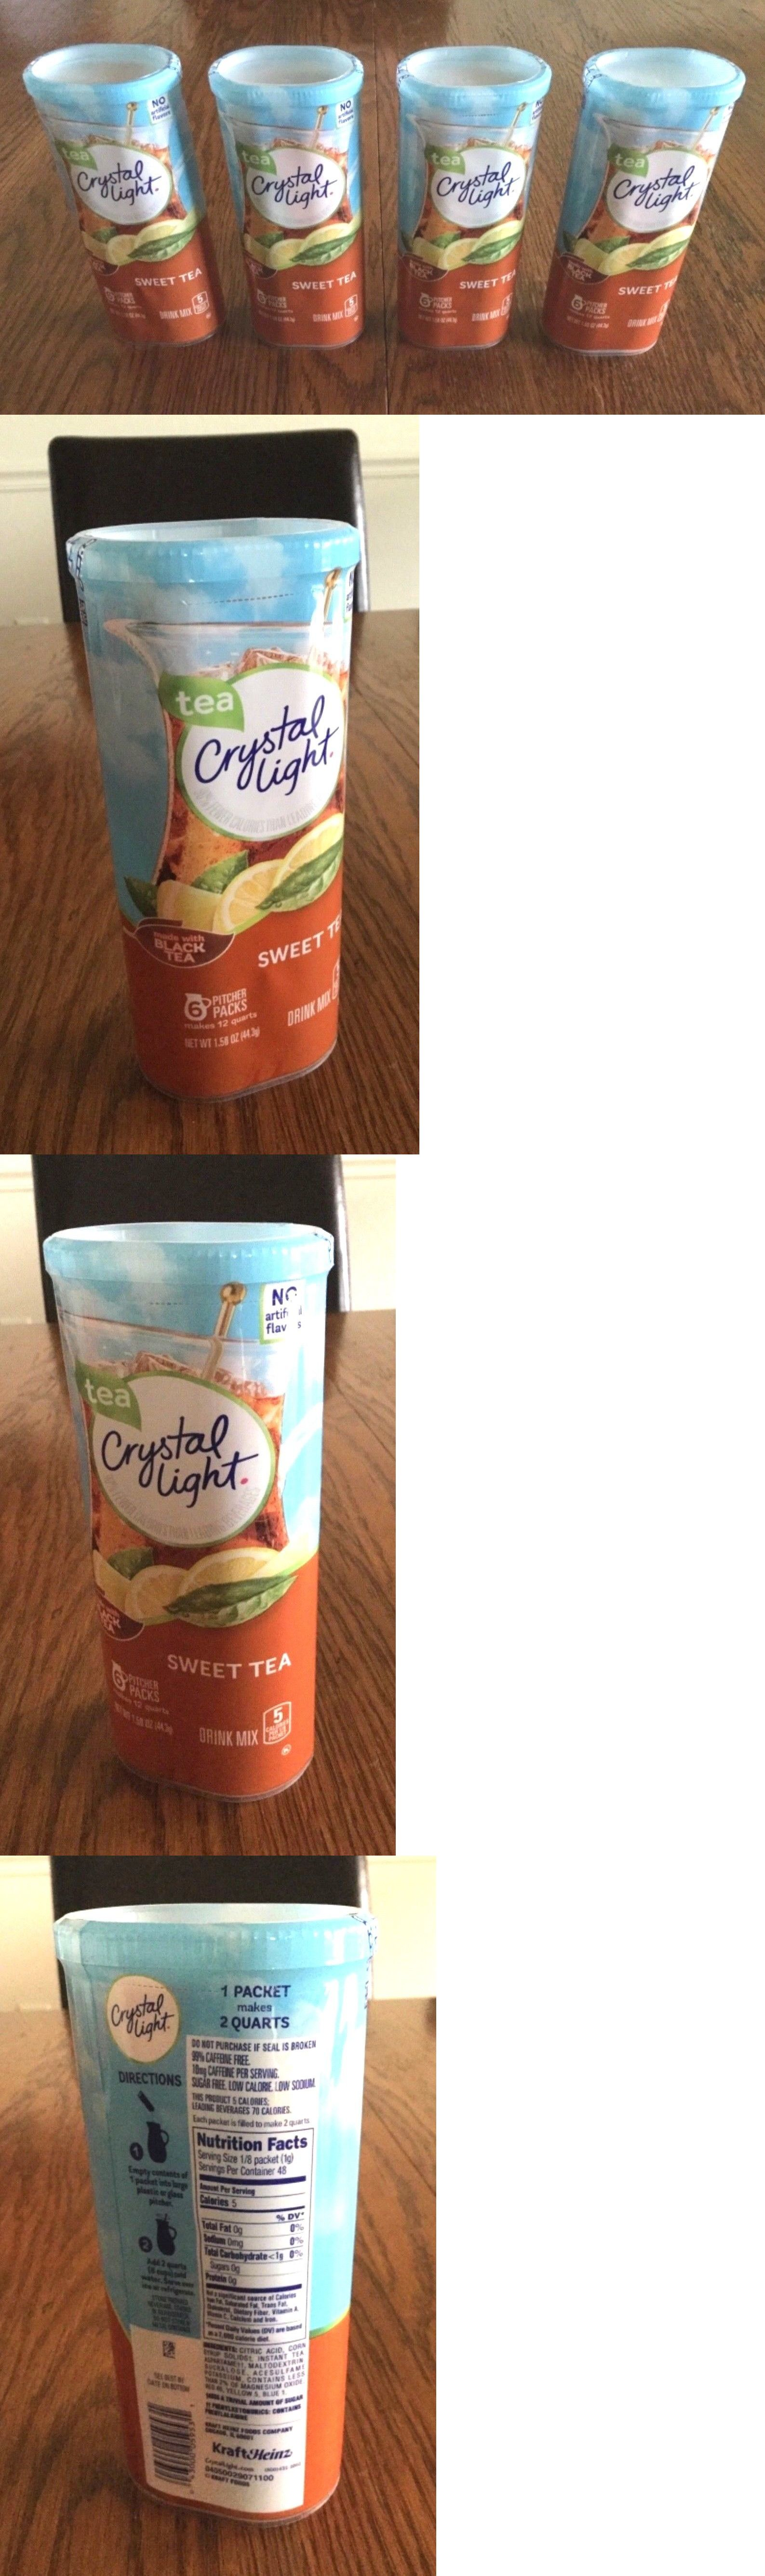 Drink Mixes 179192 Crystal Light Sweet Tea Drink Mix 24 Pitcher Packets Makes 48 Qts Buy It Now Only 14 99 On Ebay Sweet Tea Drinking Tea Mixed Drinks